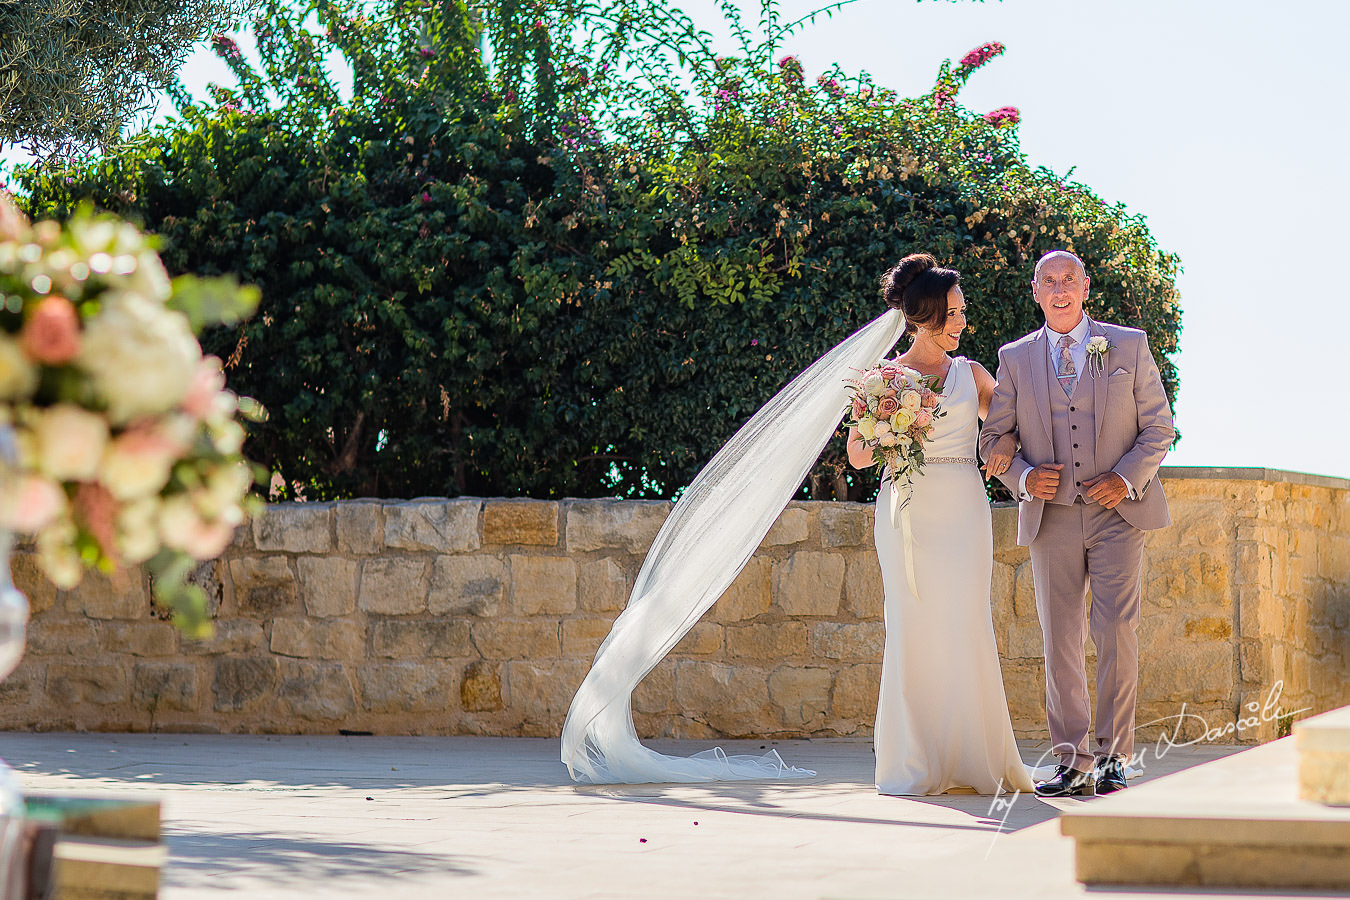 The bride arrives with her father, moments captured by Cristian Dascalu during an elegant Aphrodite Hills Wedding in Cyprus.